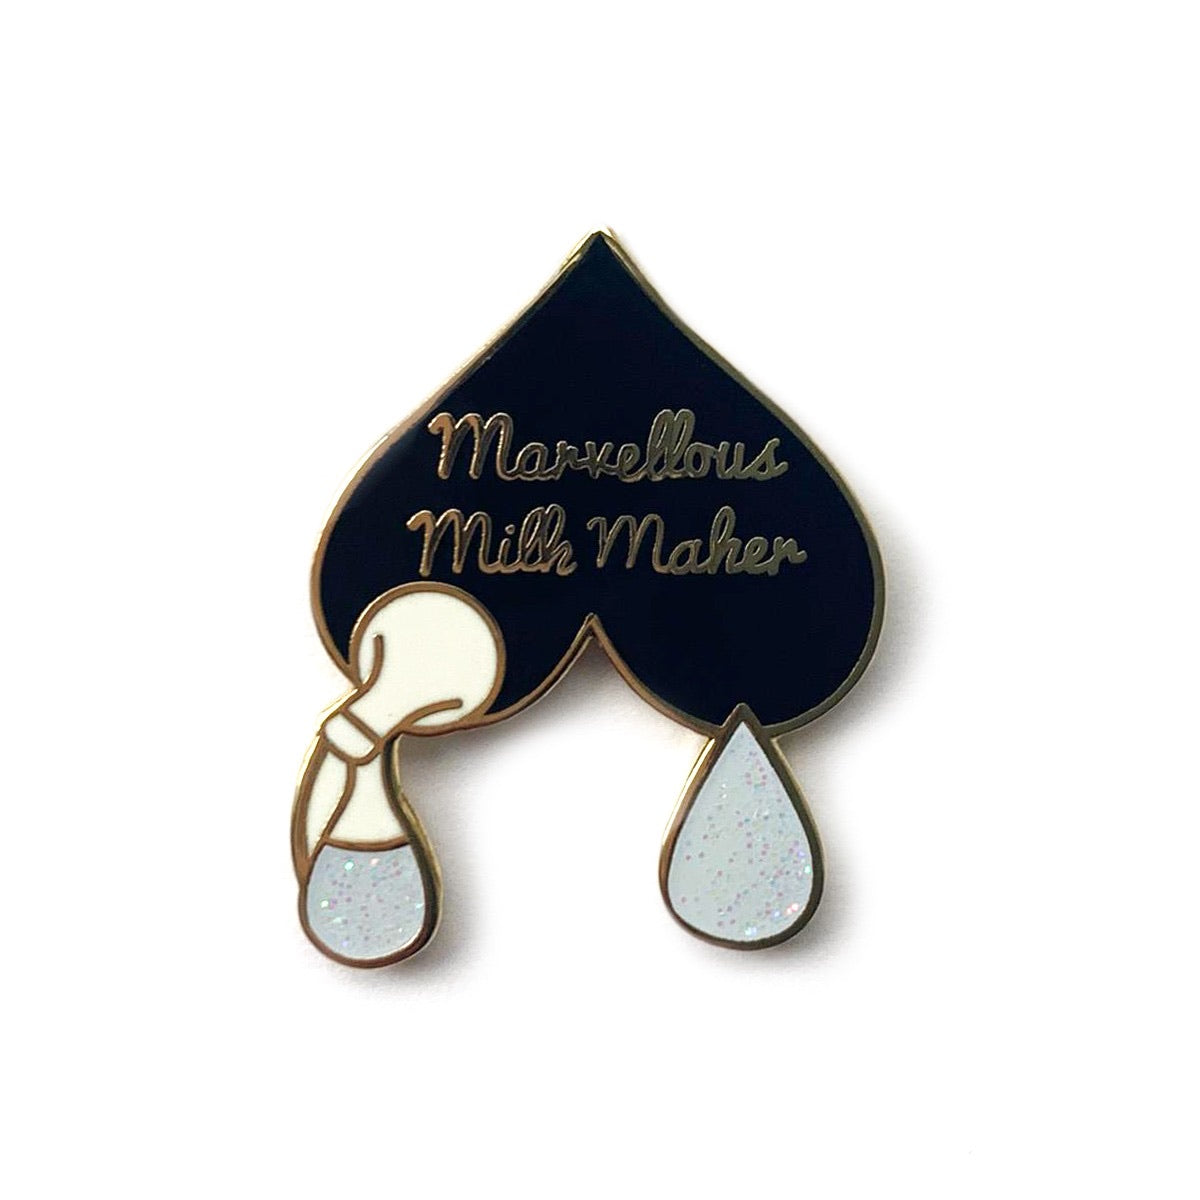 Marvellous Milk Maker Enamel Pin - Black